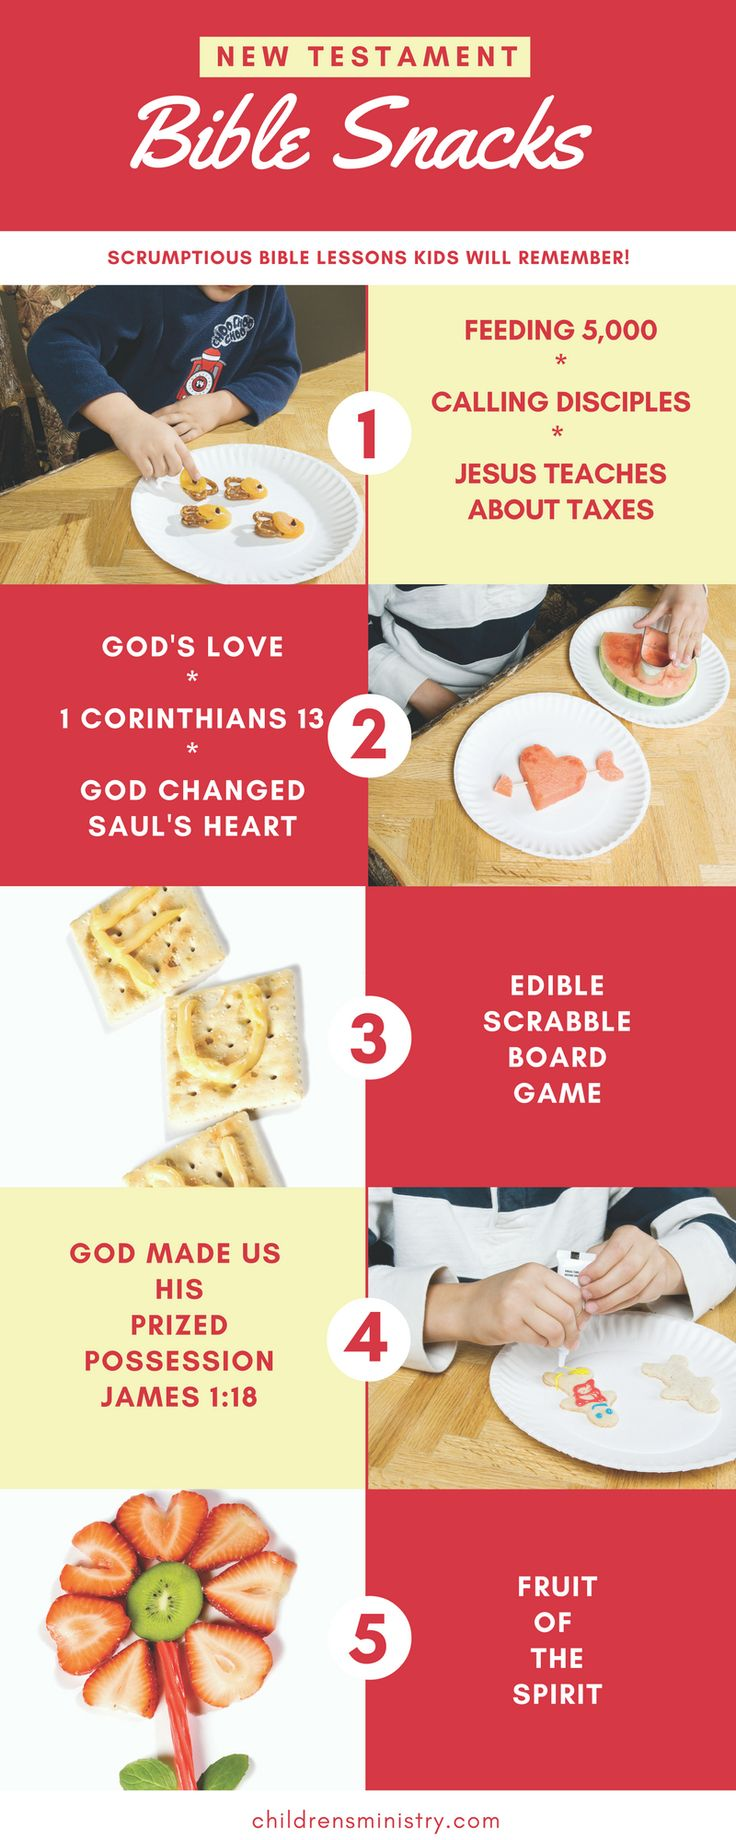 Great snacks to help kids remember Bible lessons